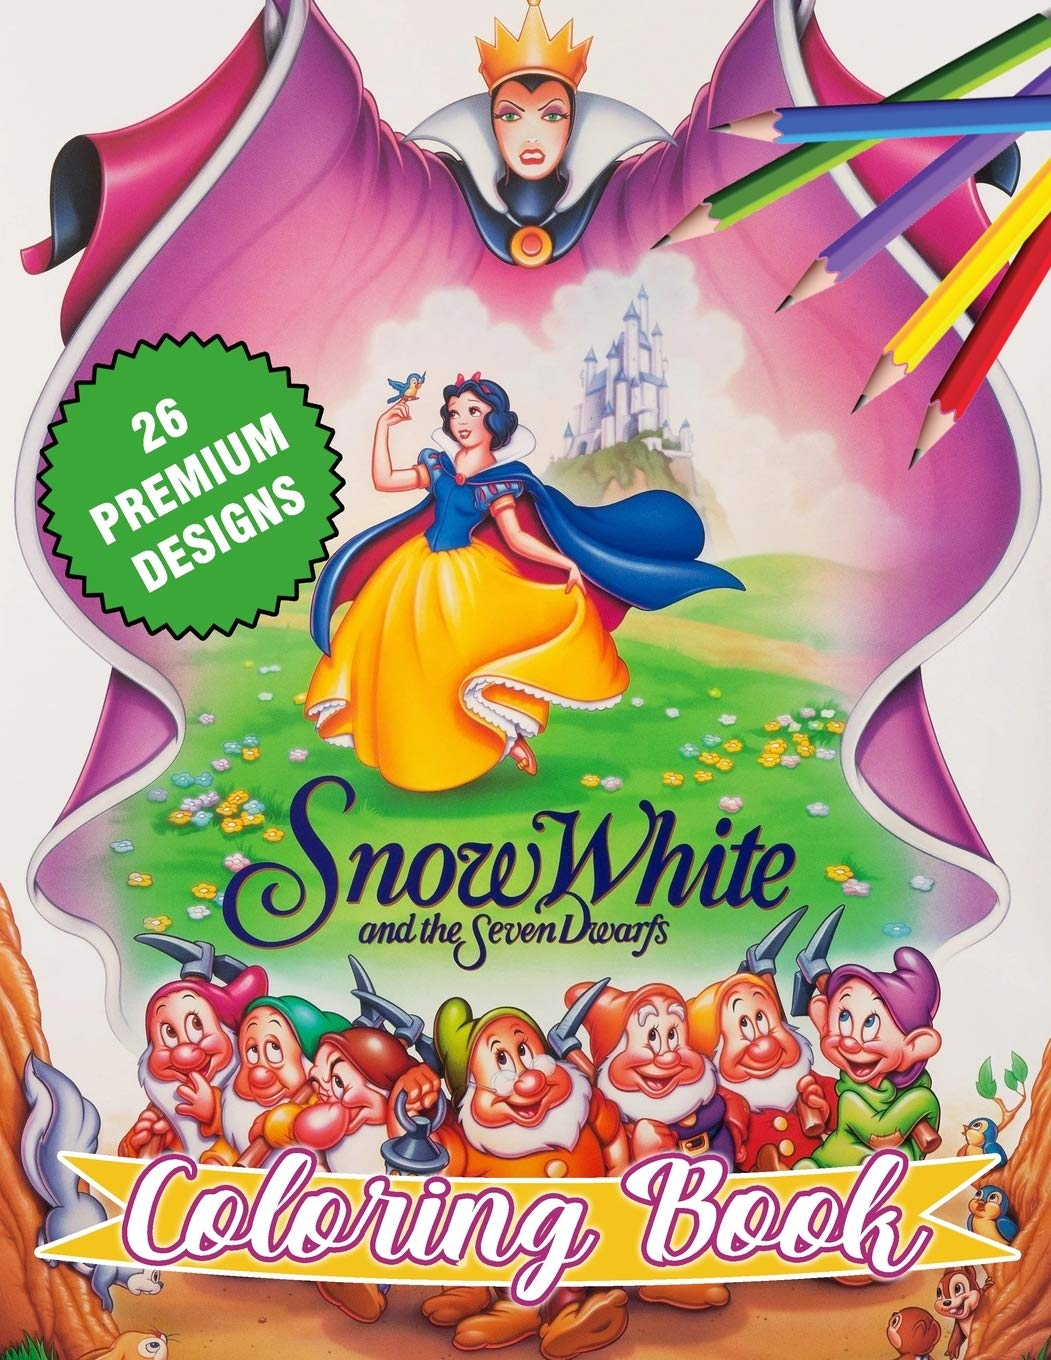 Snow White Coloring Book Great Coloring Book For Kids And Adults Snow White Coloring Book With High Quality Images For All Ages Daniel Daniel D 9798666110171 Amazon Com Books